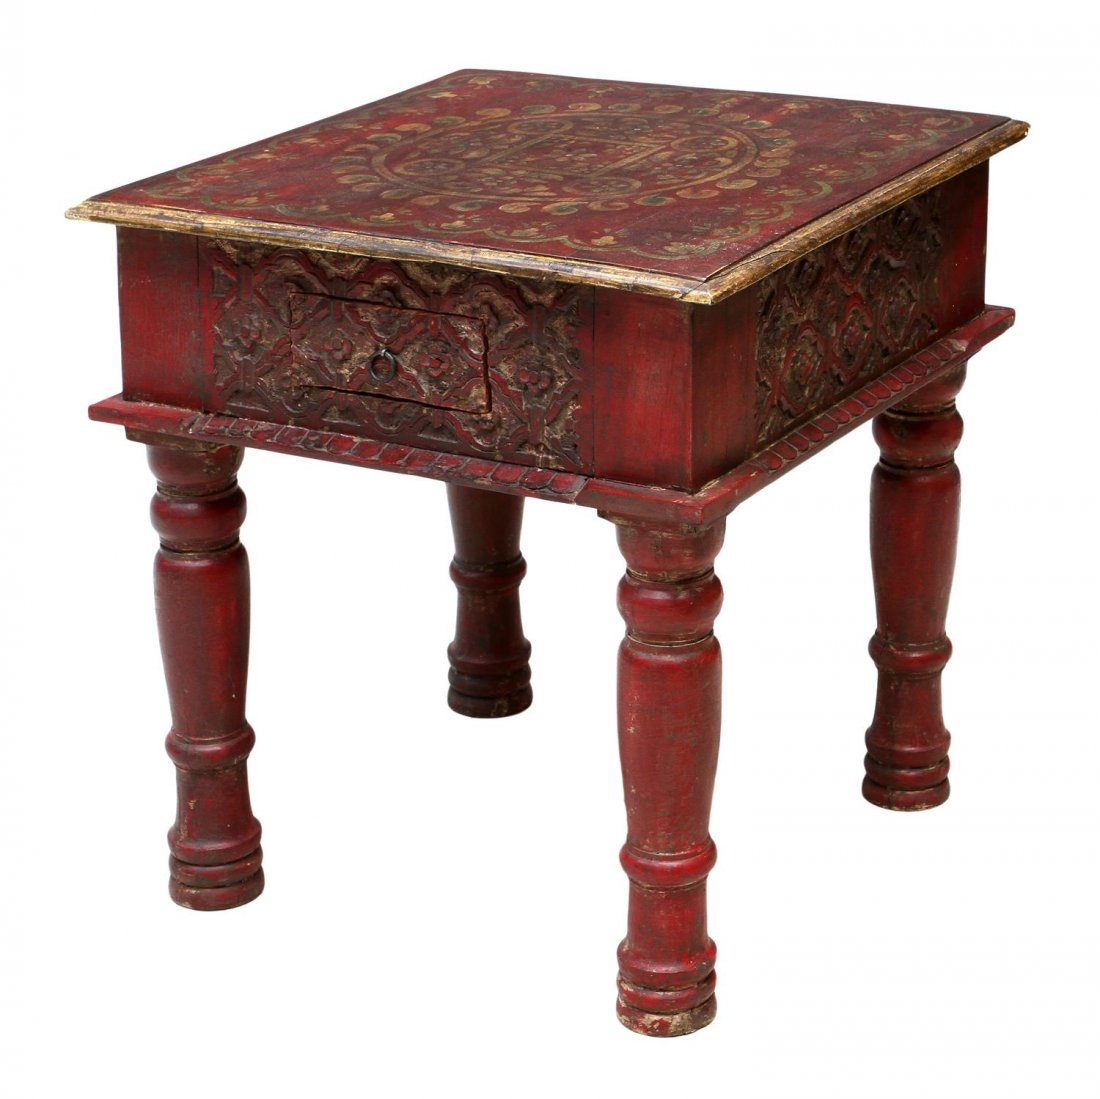 FLORAL DECORATED OCCASIONAL TABLE IN RED PAINT